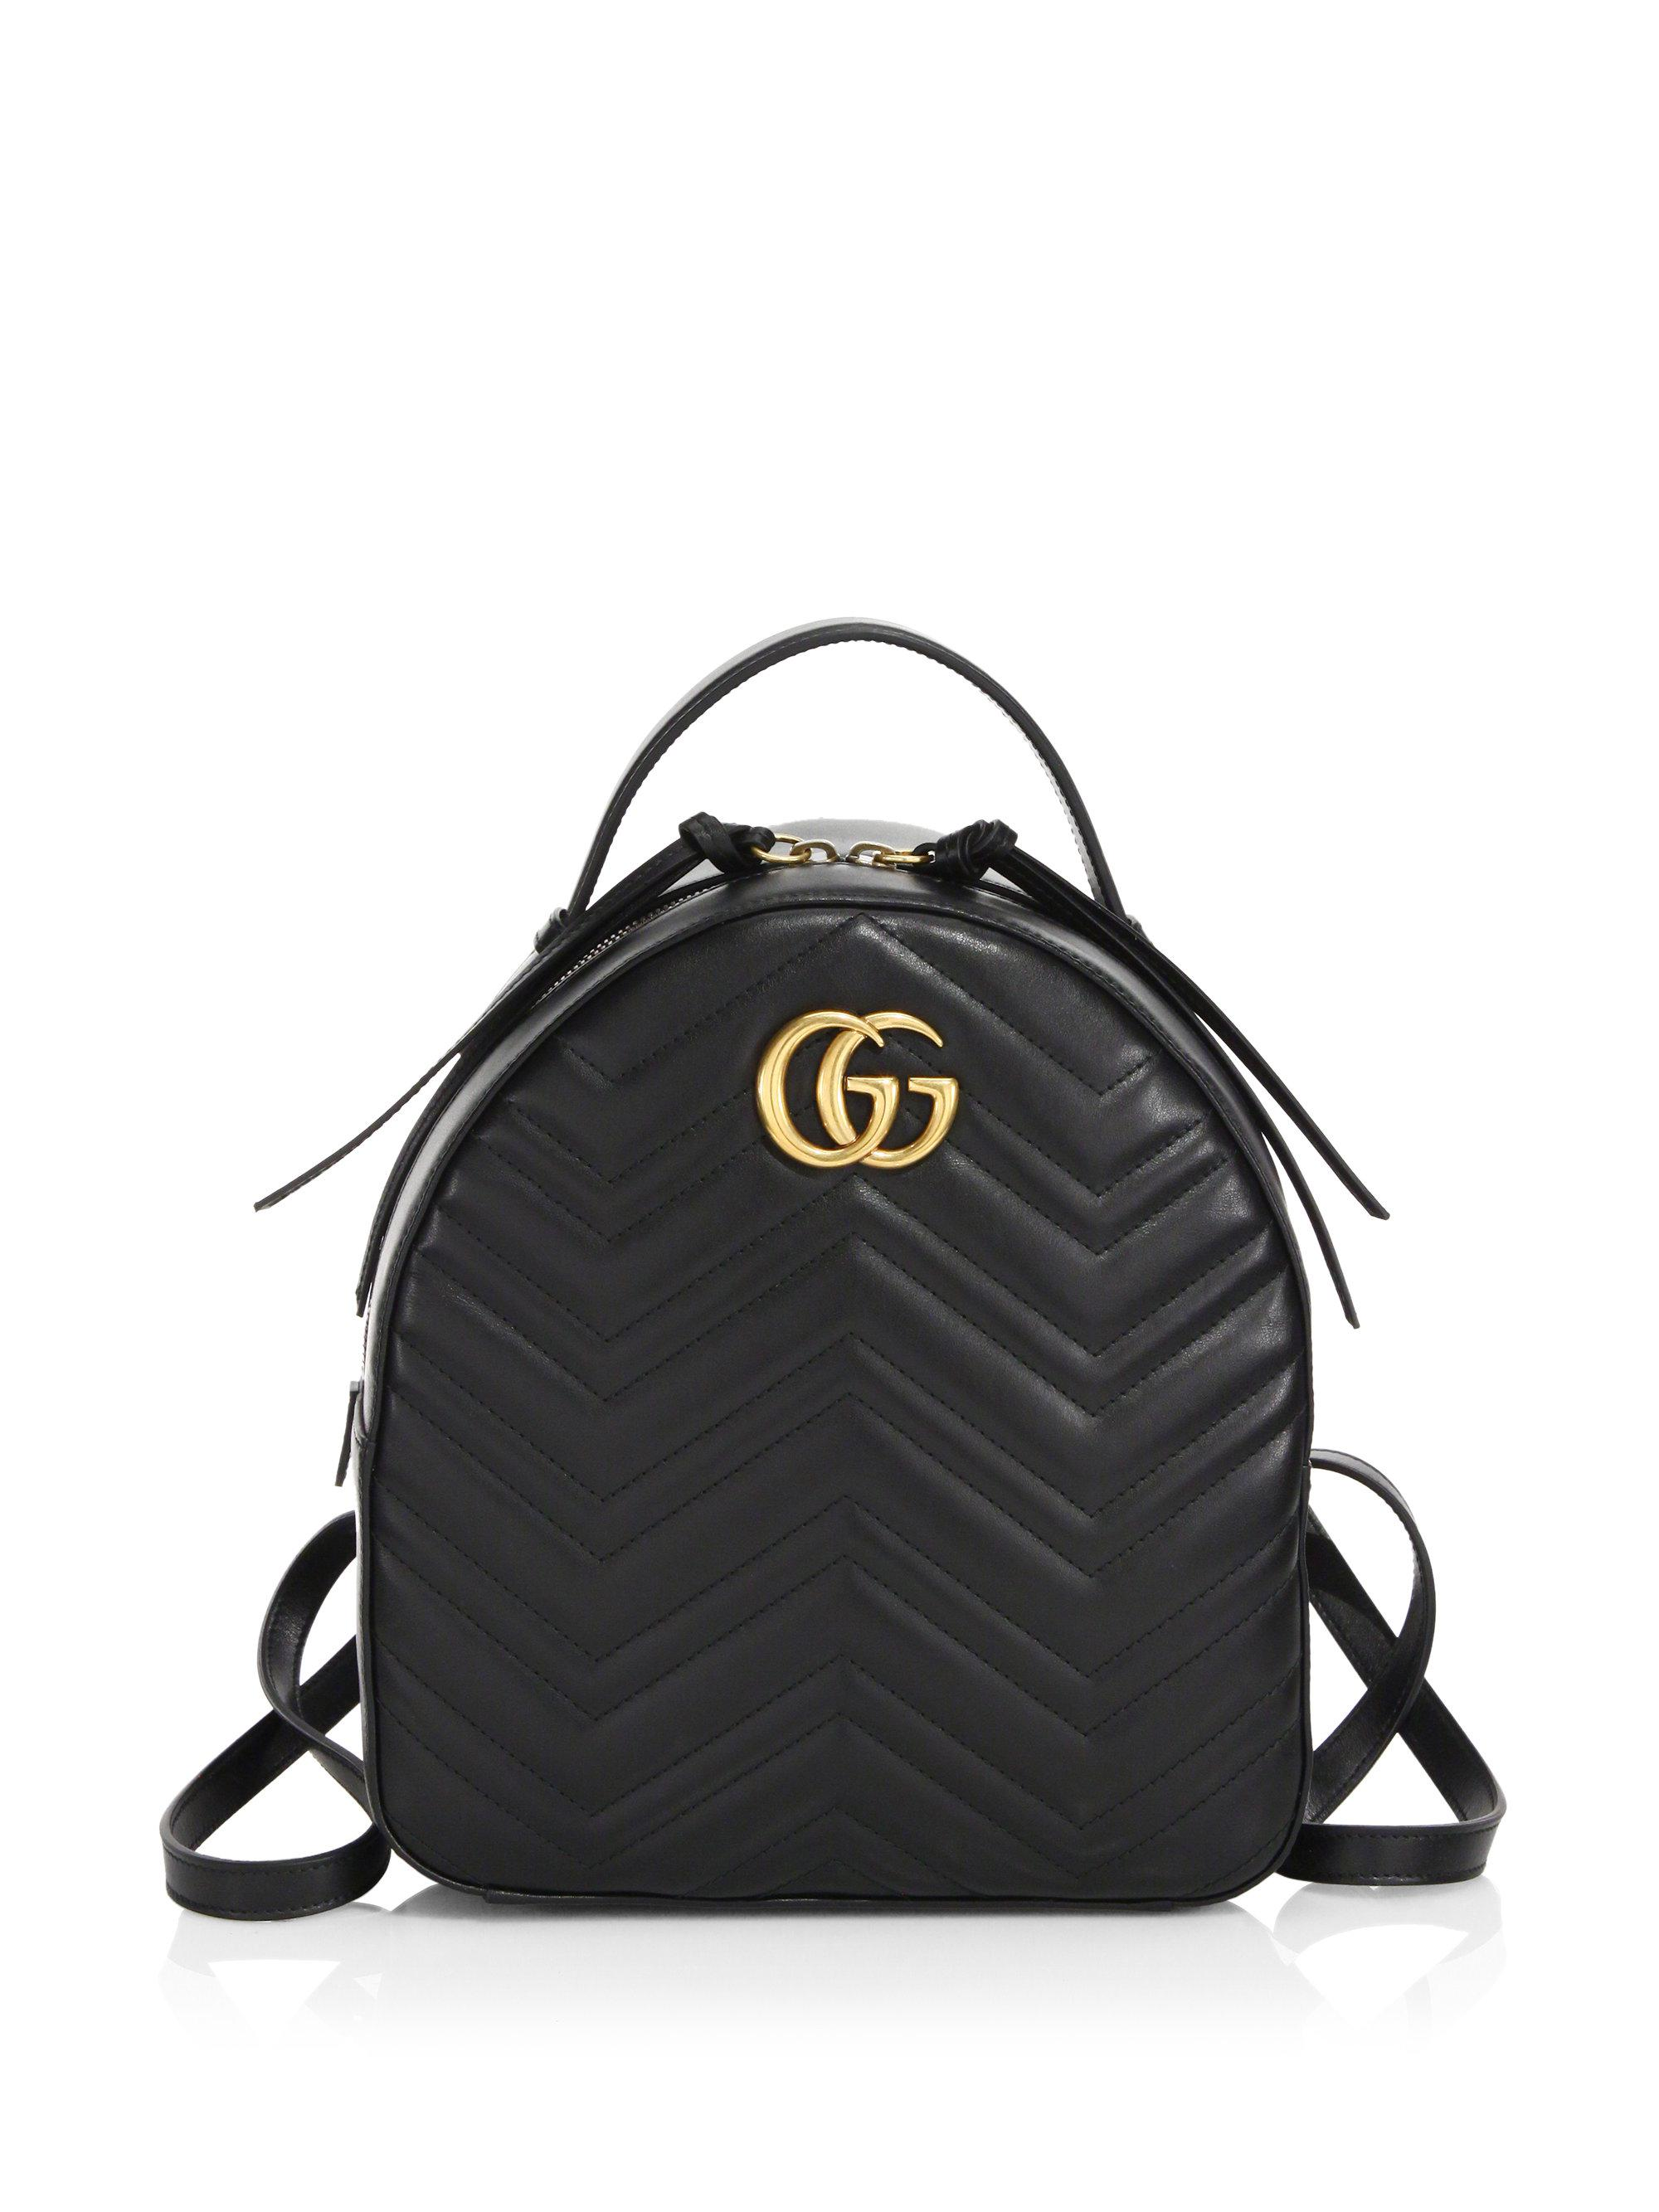 1743cf8d6b94 Gucci GG Marmont Chevron Quilted Leather Mini Backpack in Black - Lyst